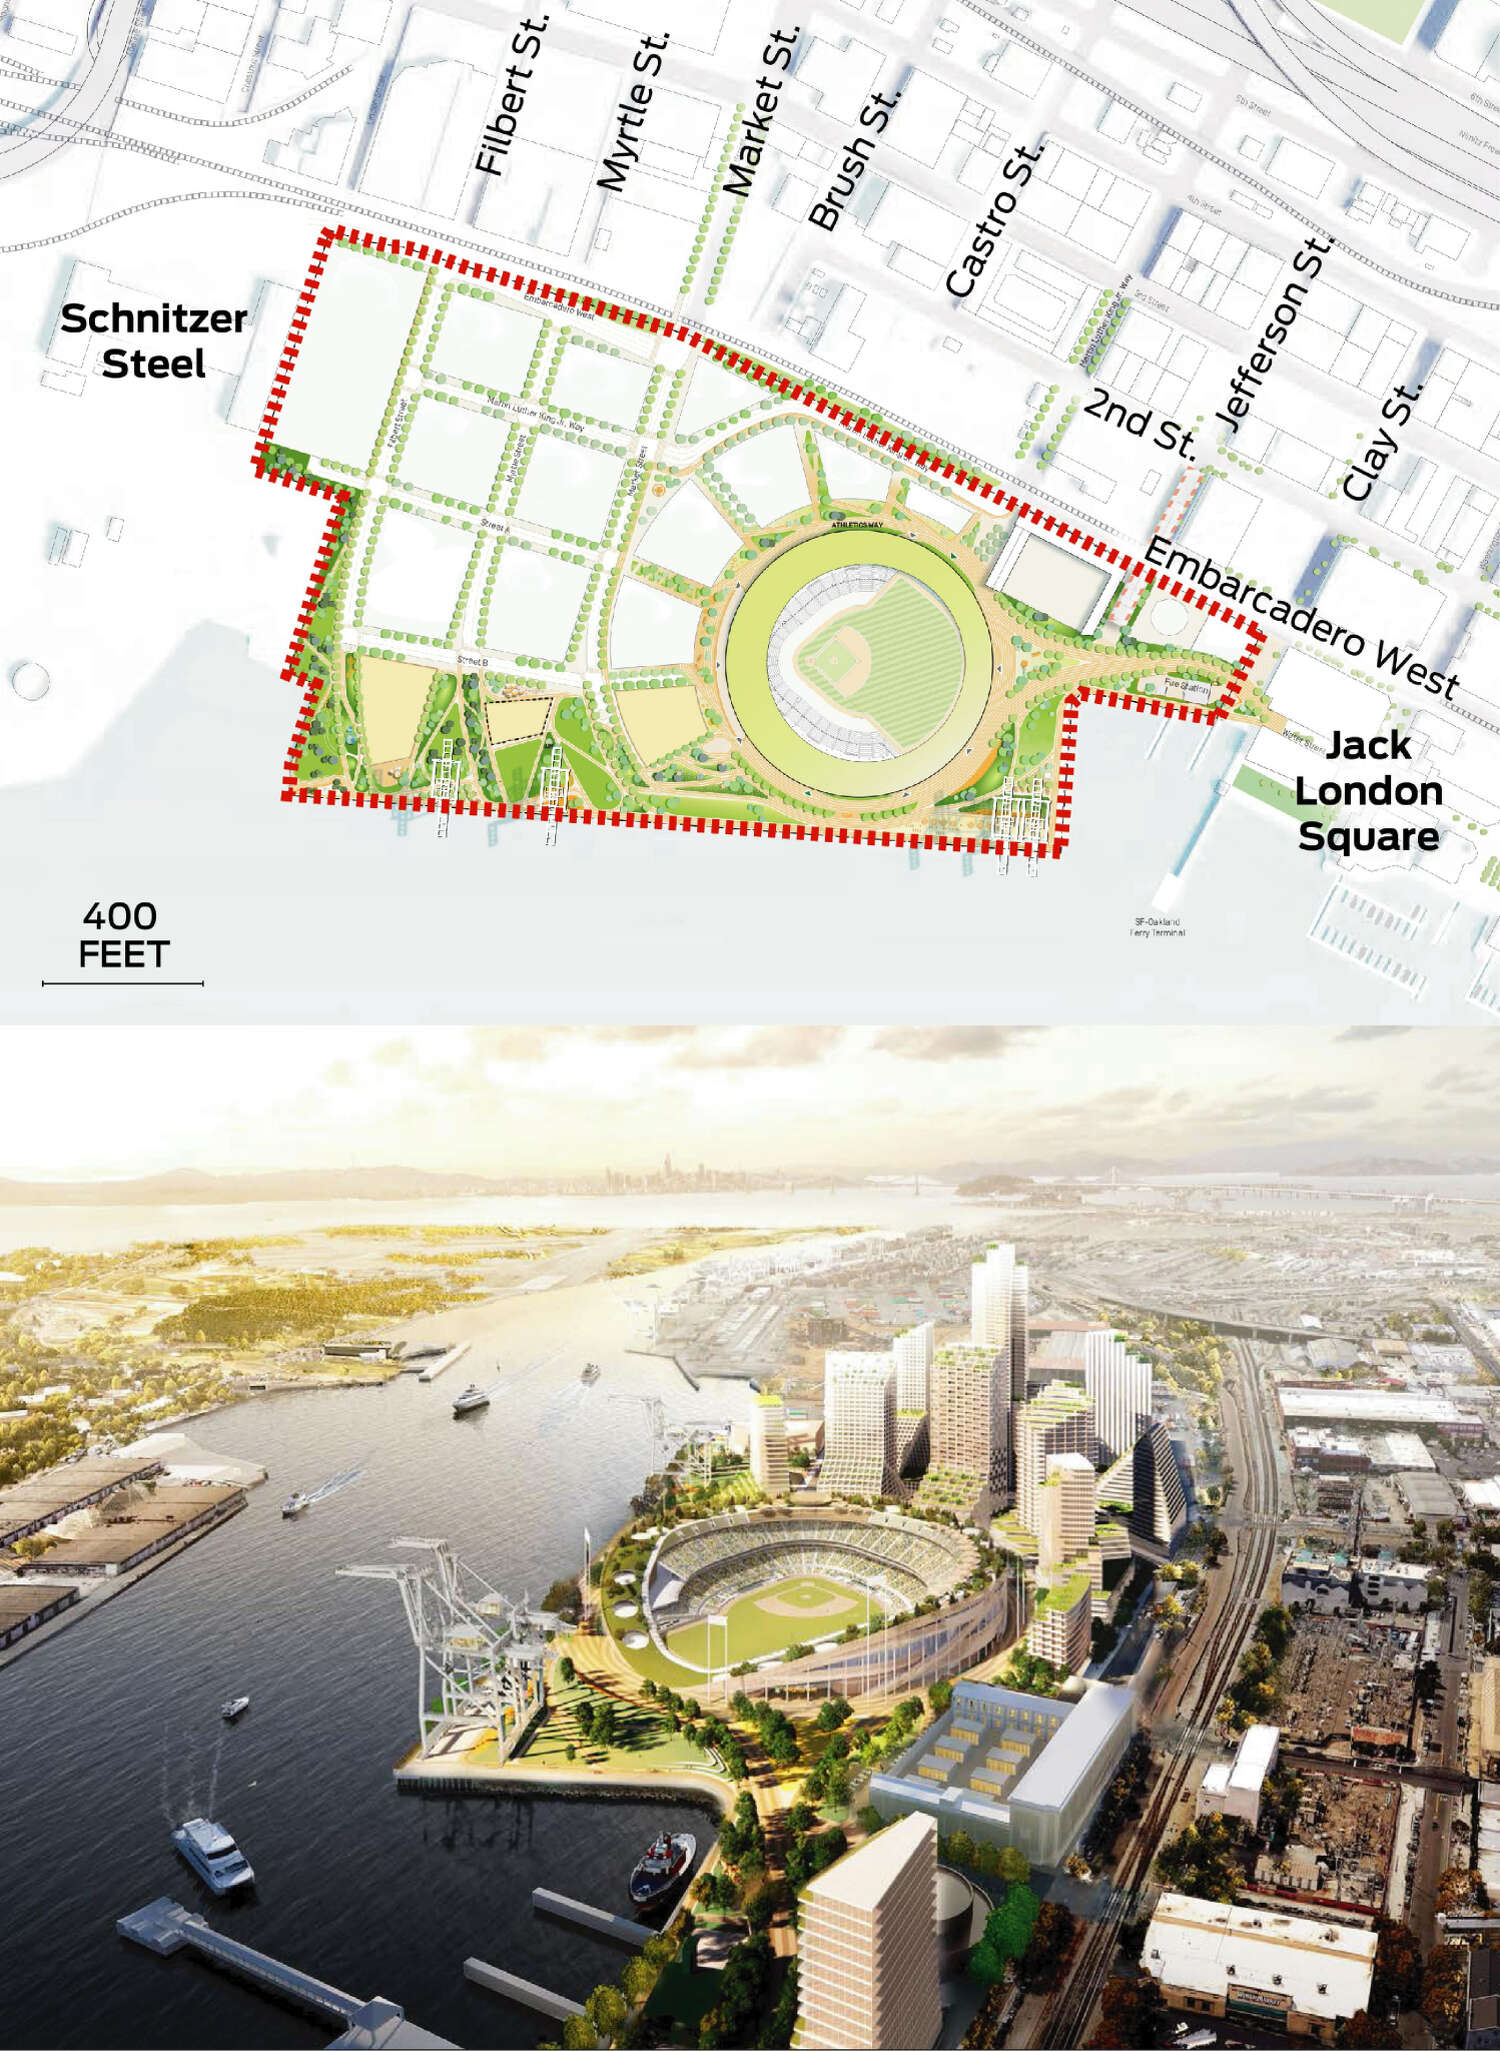 A map displays Howard Terminal and the boundaries of the A's ballpark project. A rendering shows an overall view of the proposed ballpark.